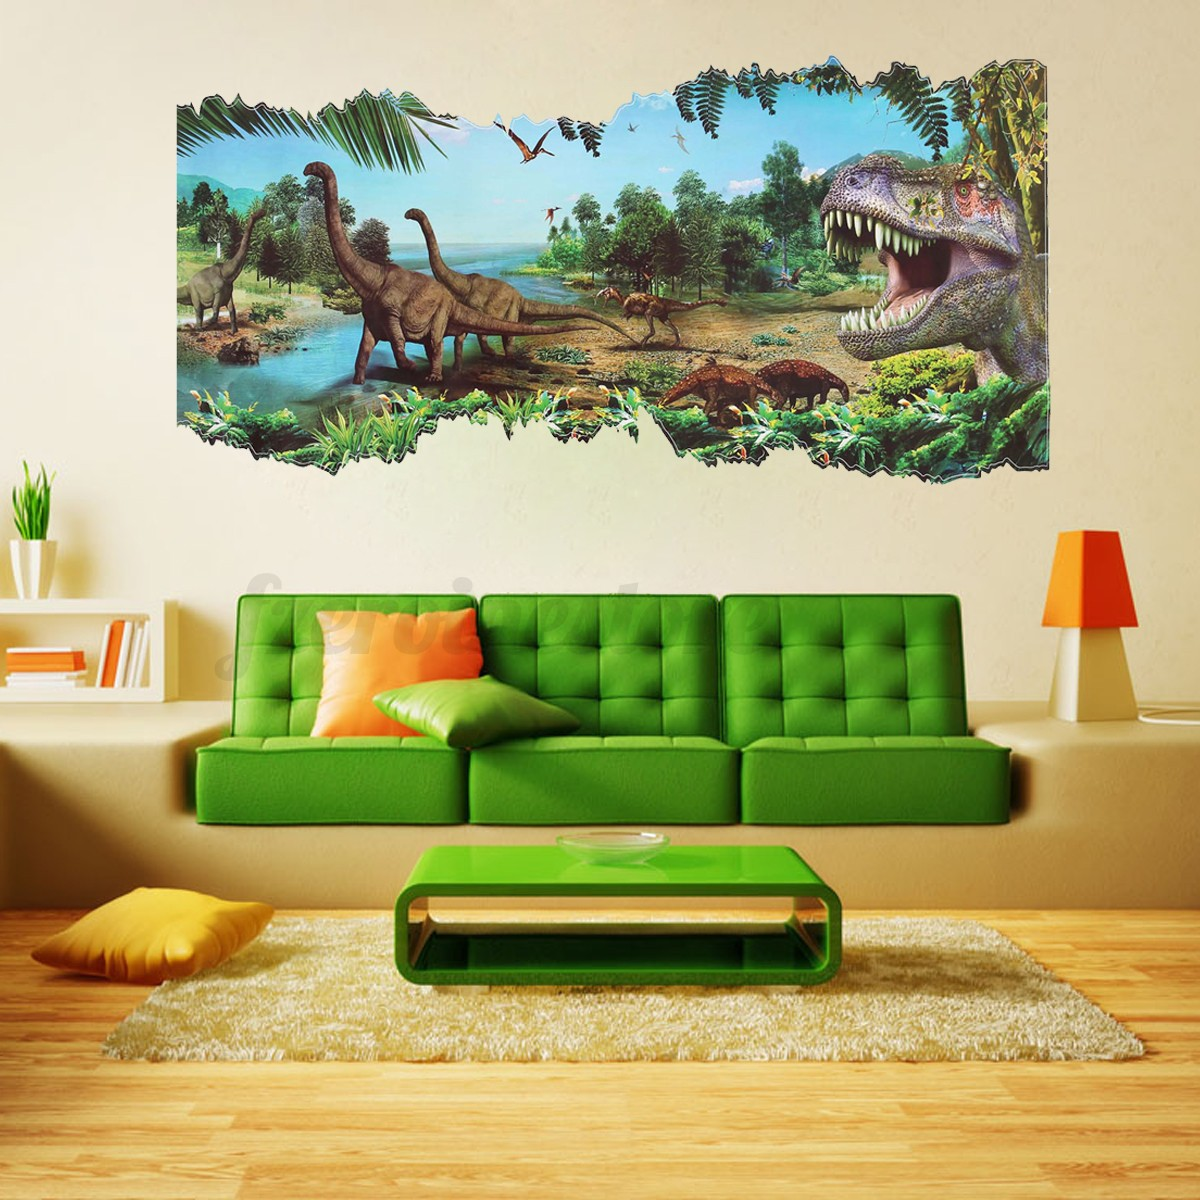 3d jurassic world park dinosaur wall sticker kids room decal mural home decor ebay. Black Bedroom Furniture Sets. Home Design Ideas